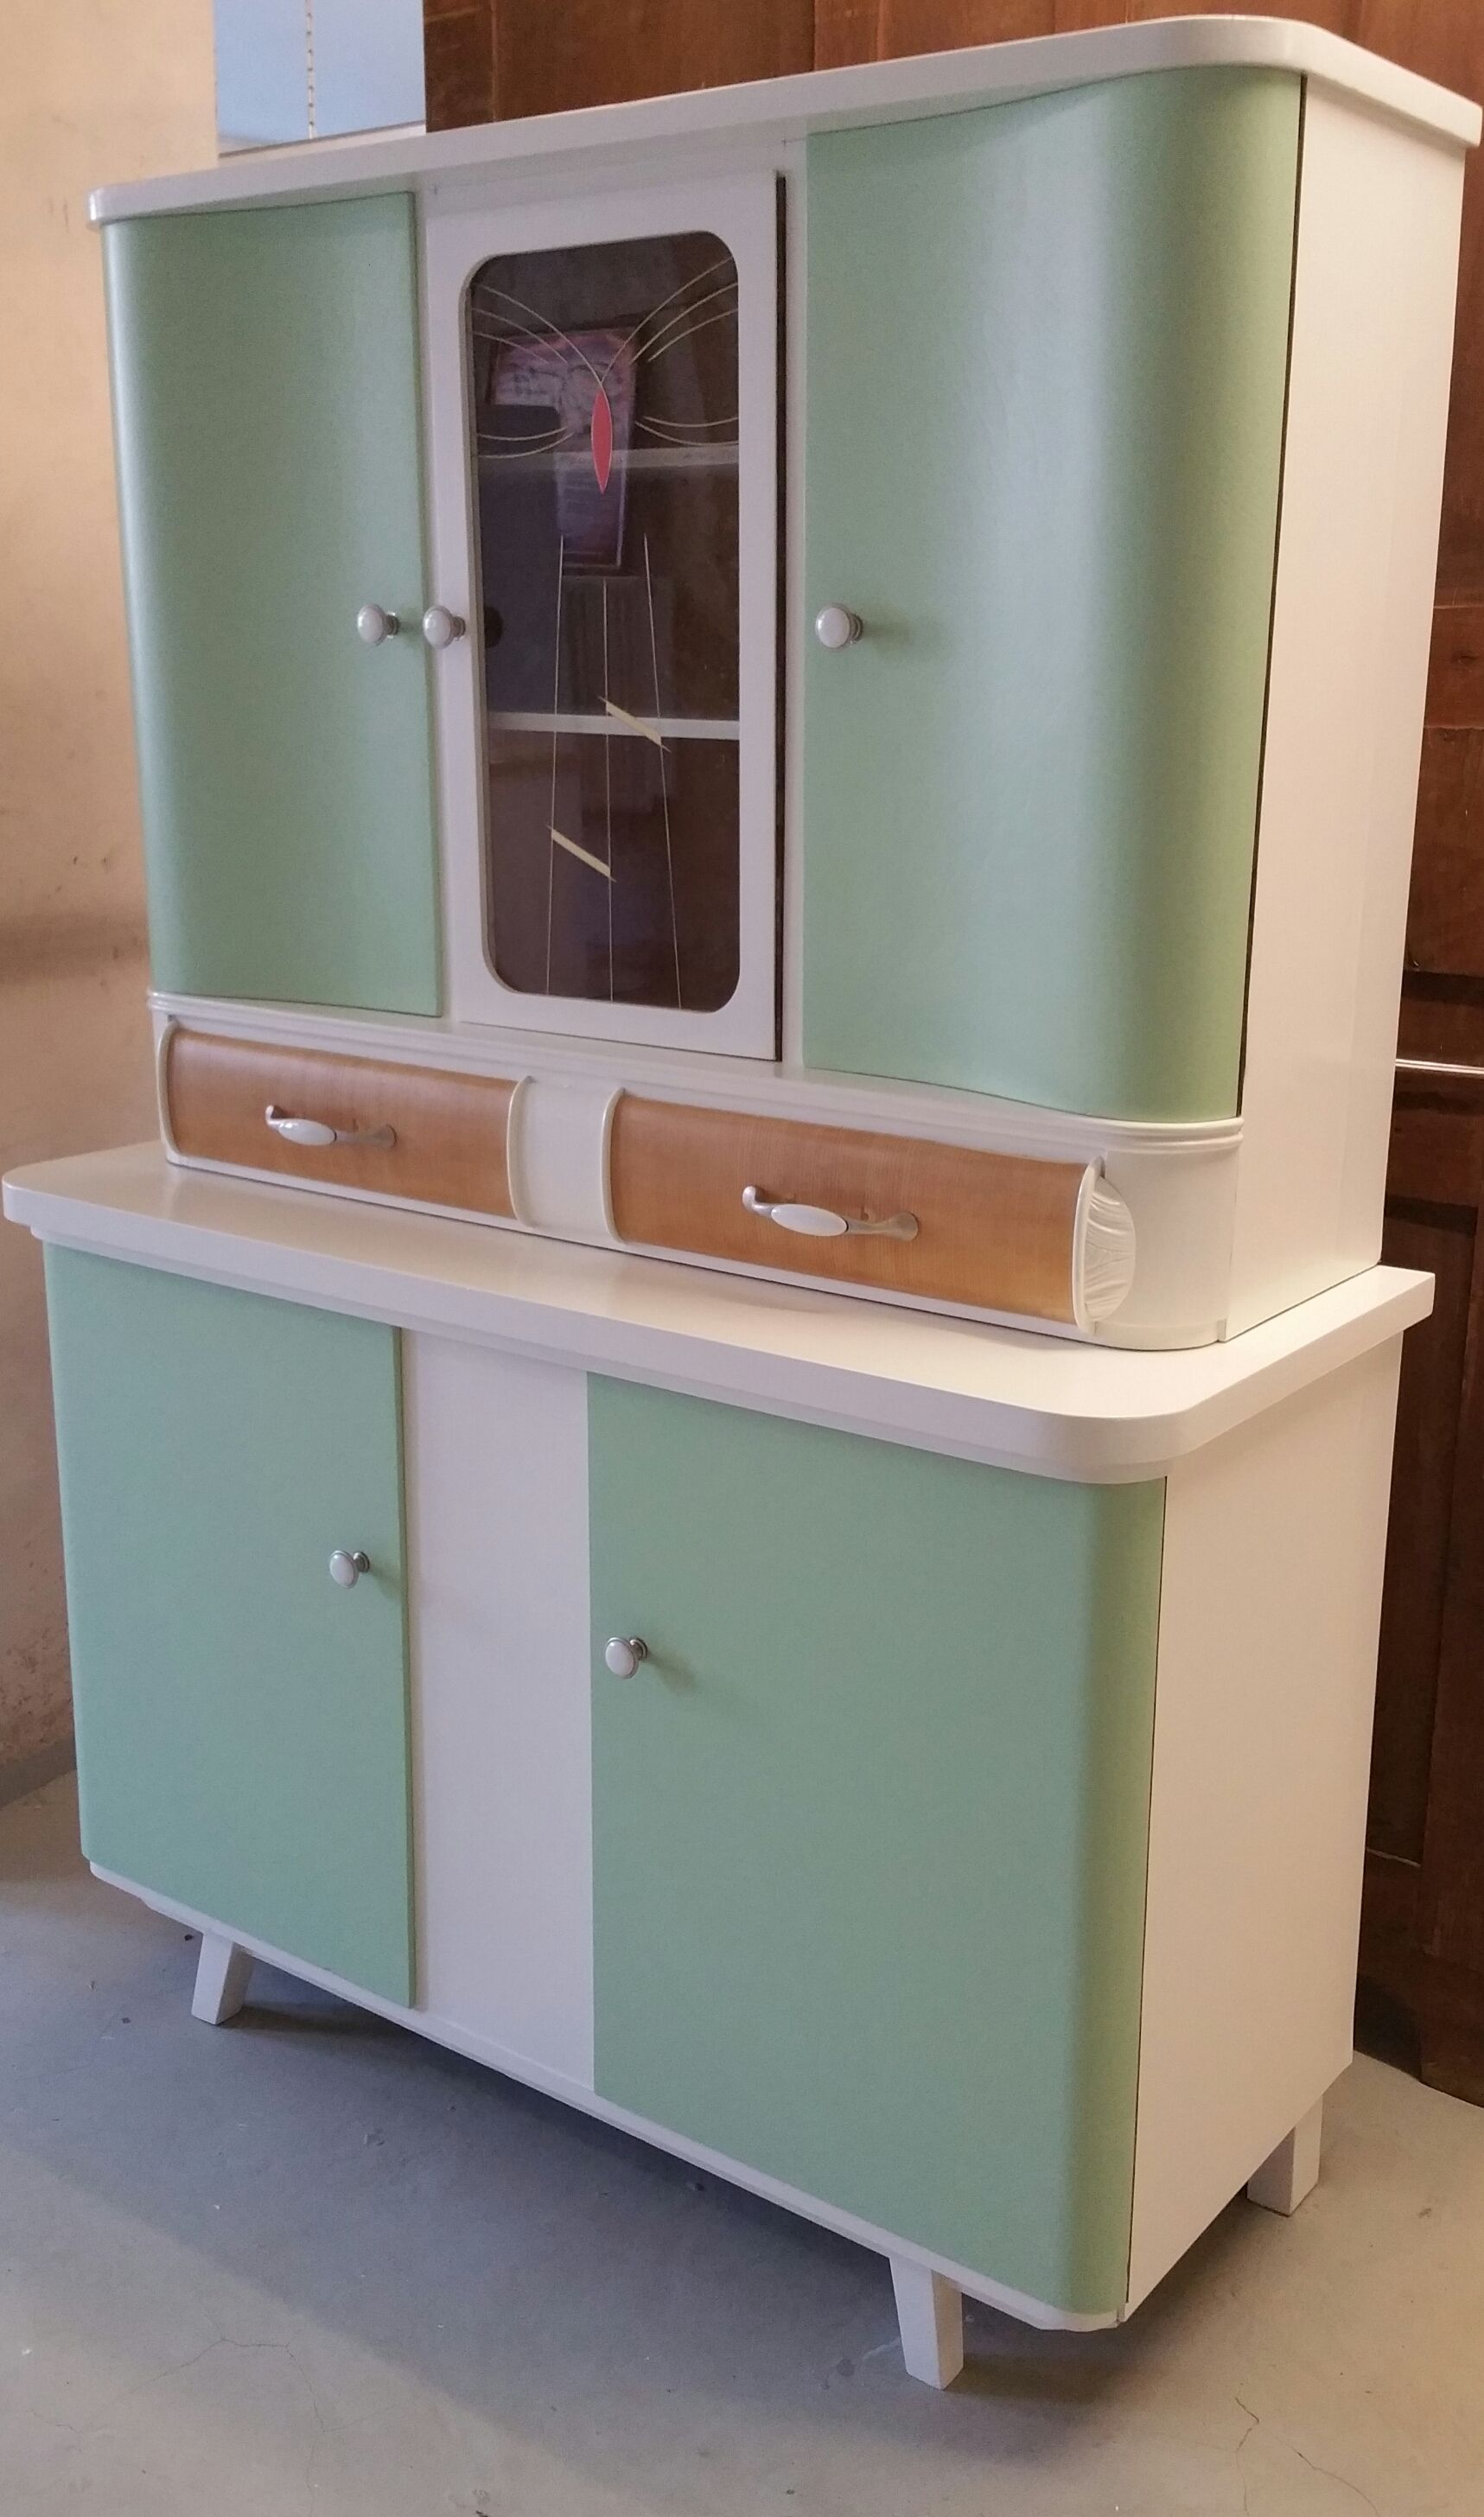 Küchenbuffet Modern Pin By Kara Rempe On Kitchen In 2019 50s Furniture Kitchen